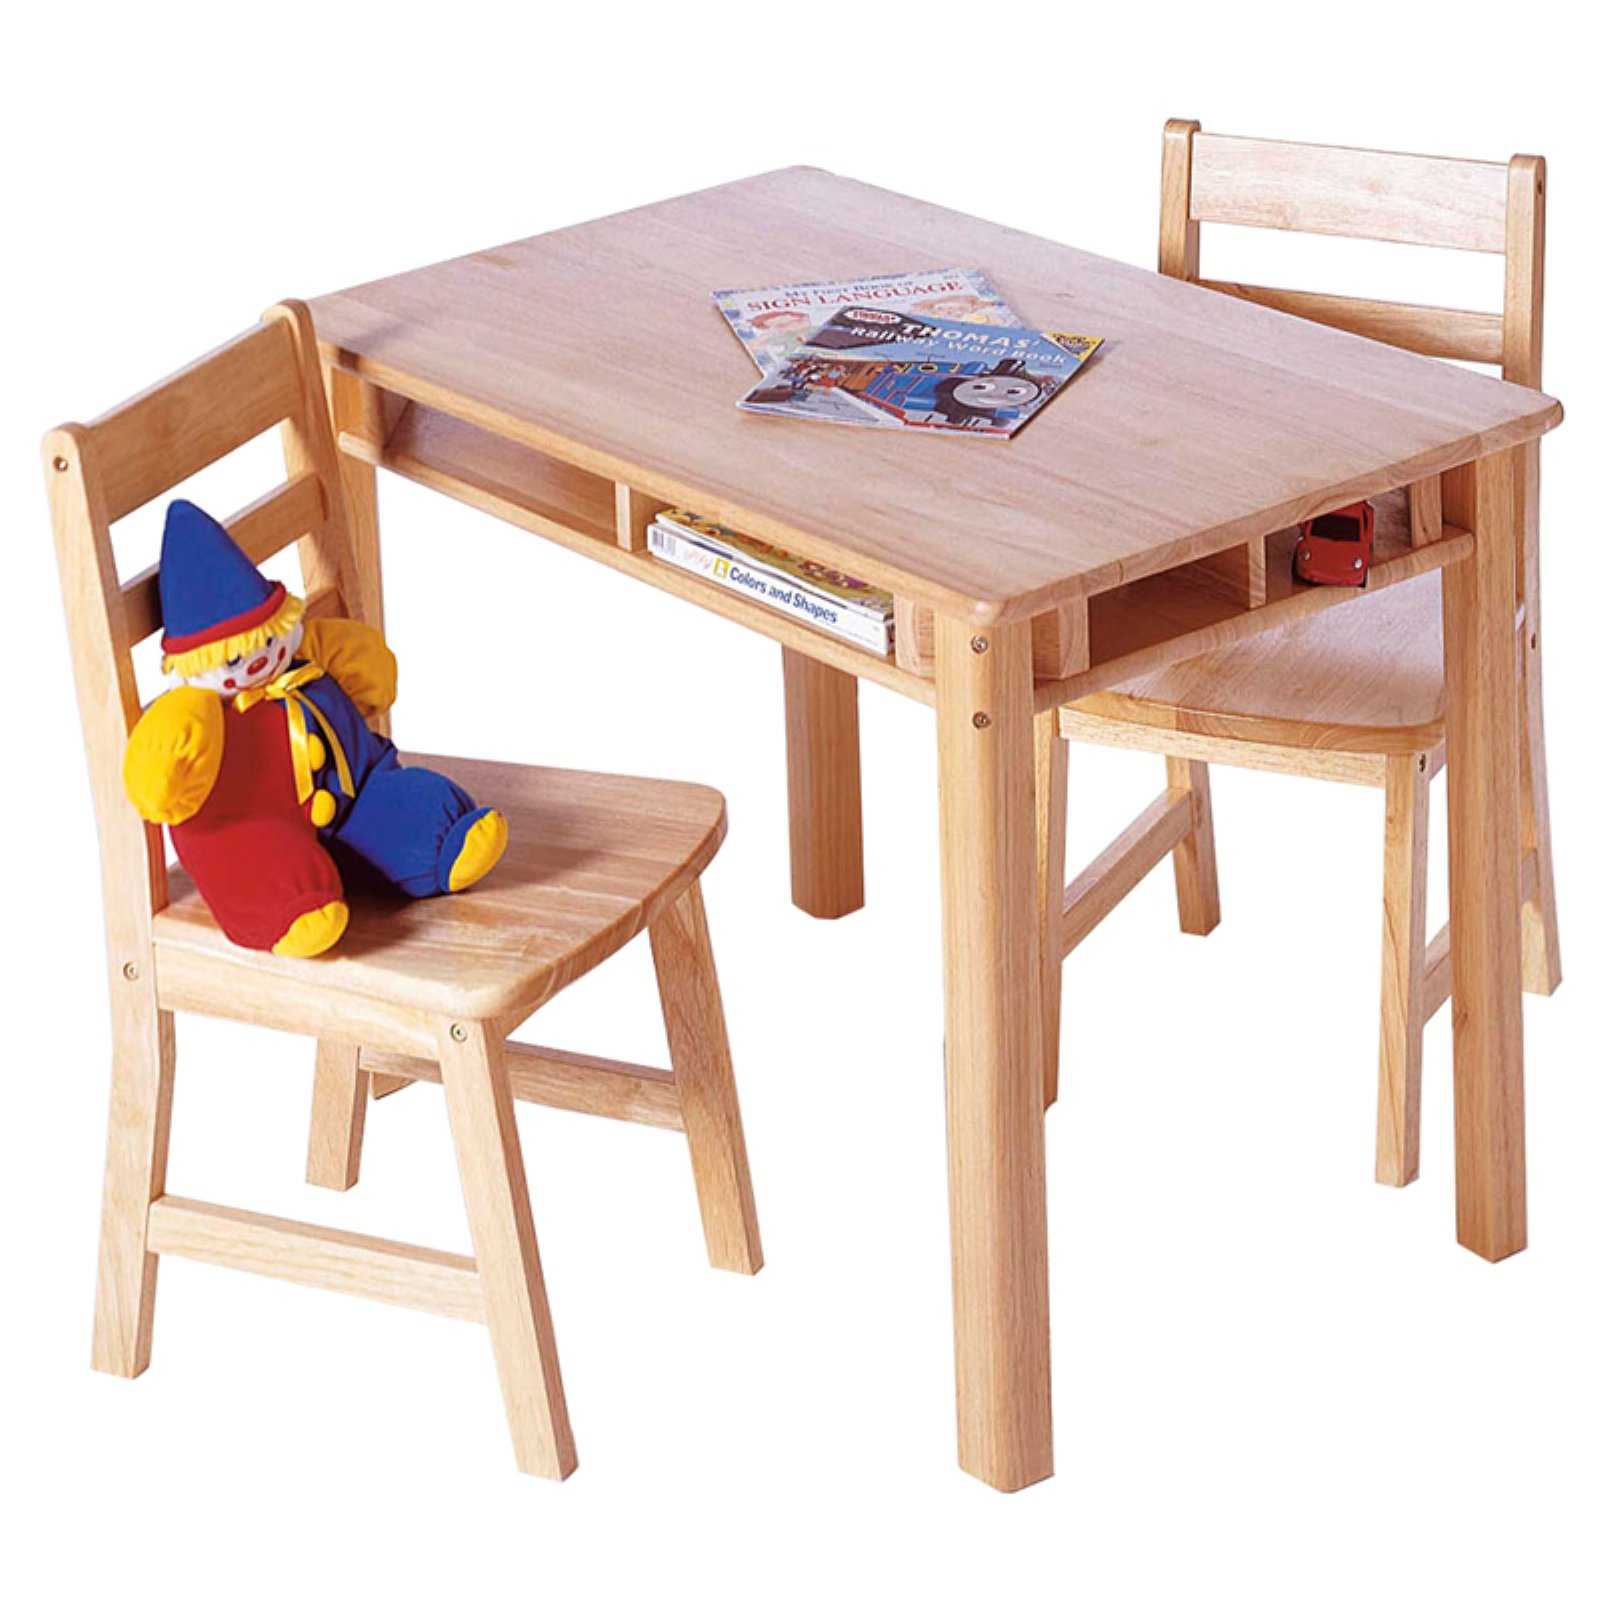 Lipper Childrens Rectangular Table and Chair Set